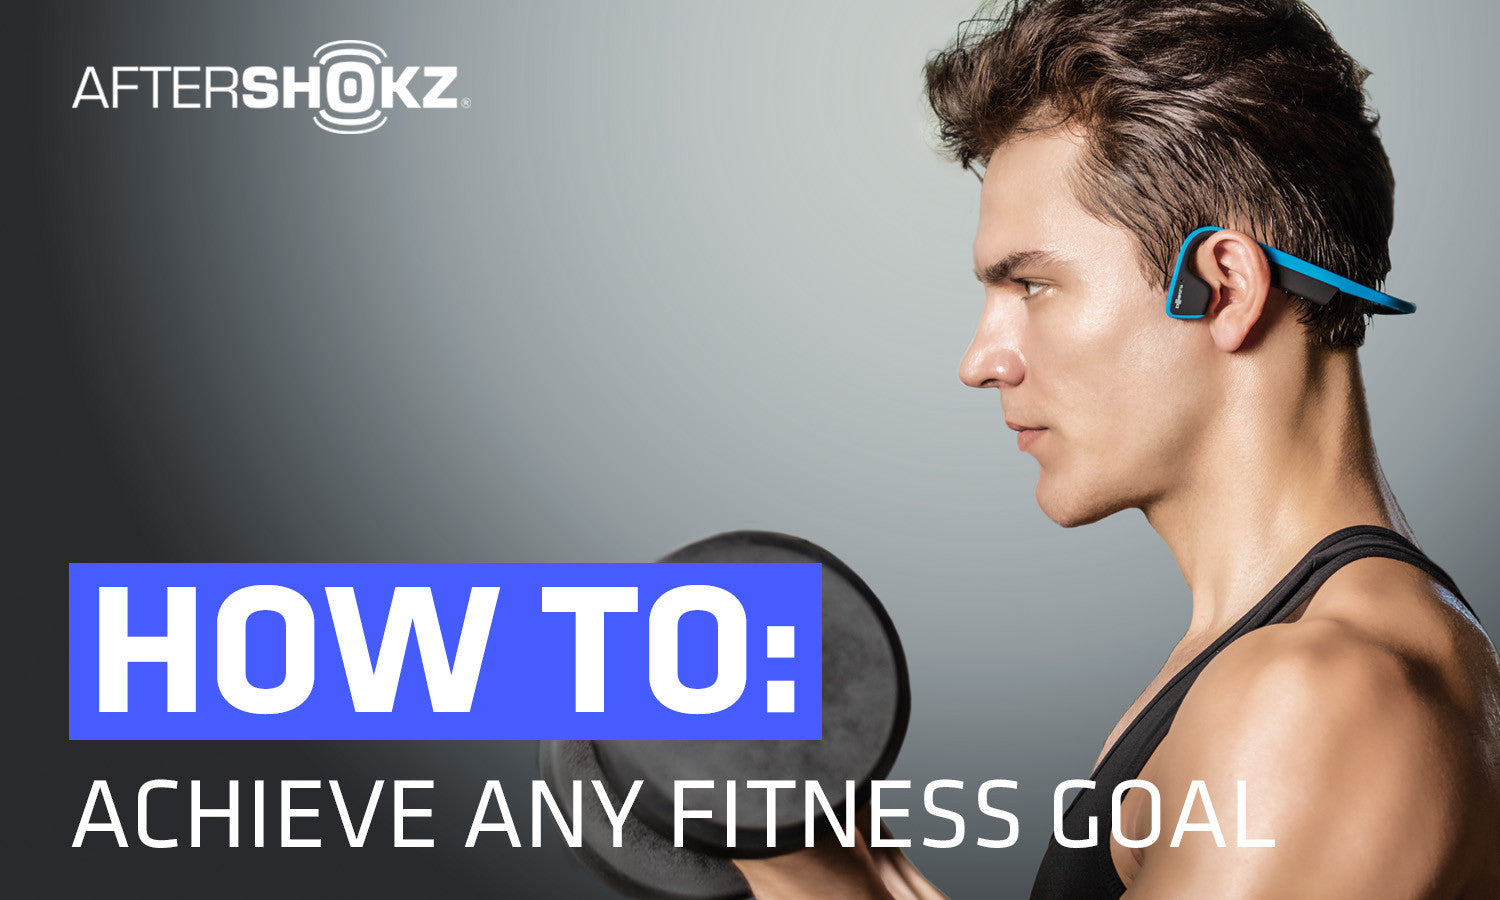 How To Achieve Any Fitness Goal